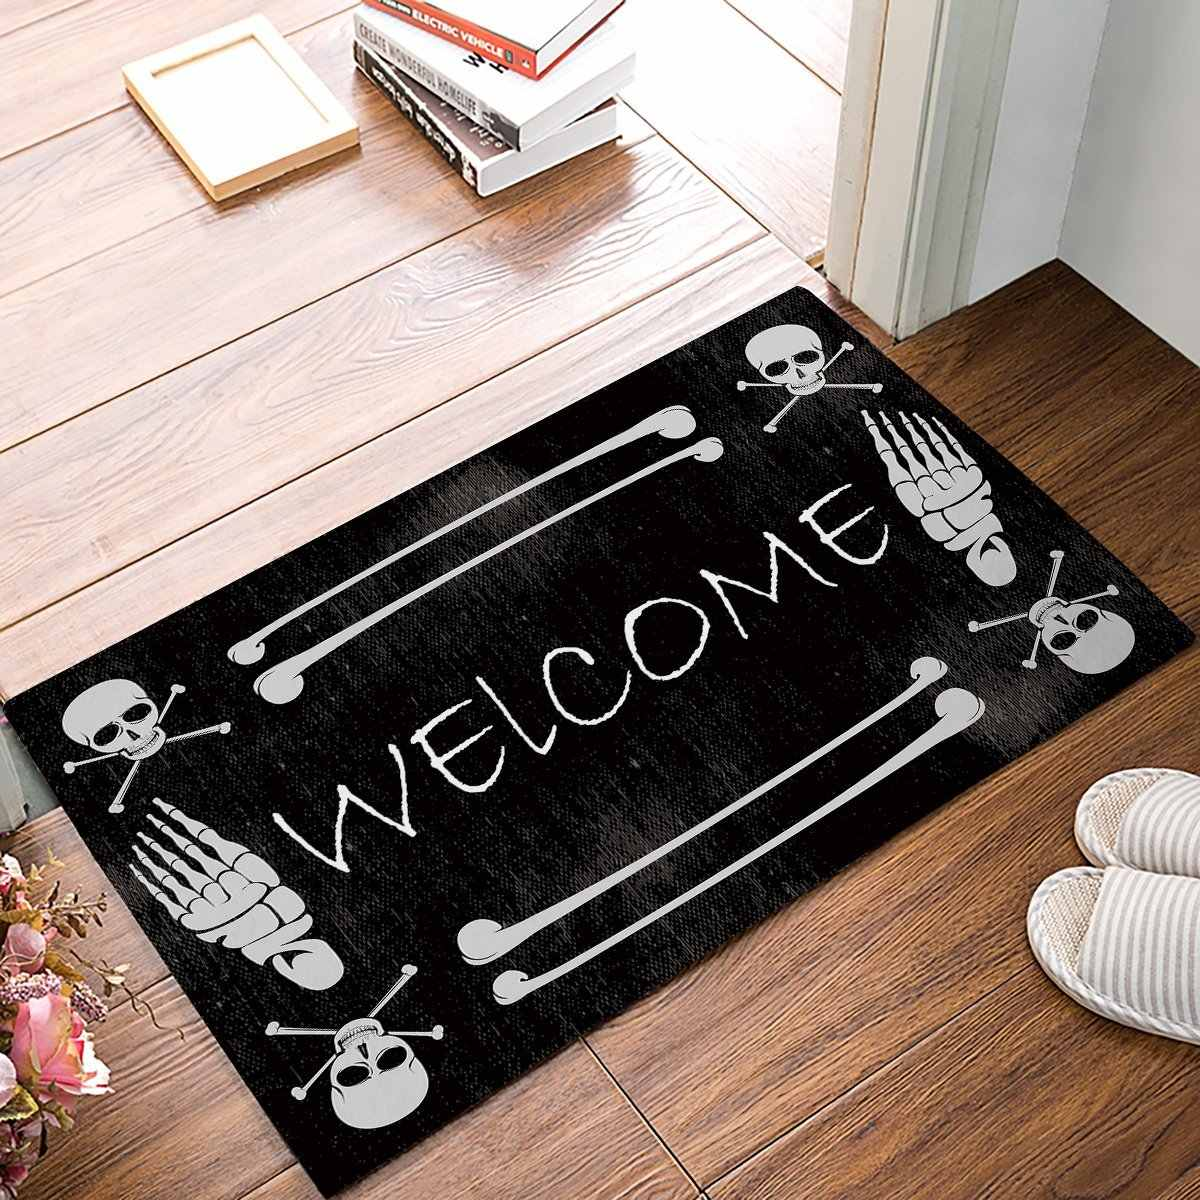 Skeleton Skull Welcome Door Mats Kitchen Floor Bath Entrance Rug Mat Absorbent Indoor Bathroom Rubber Non Slip